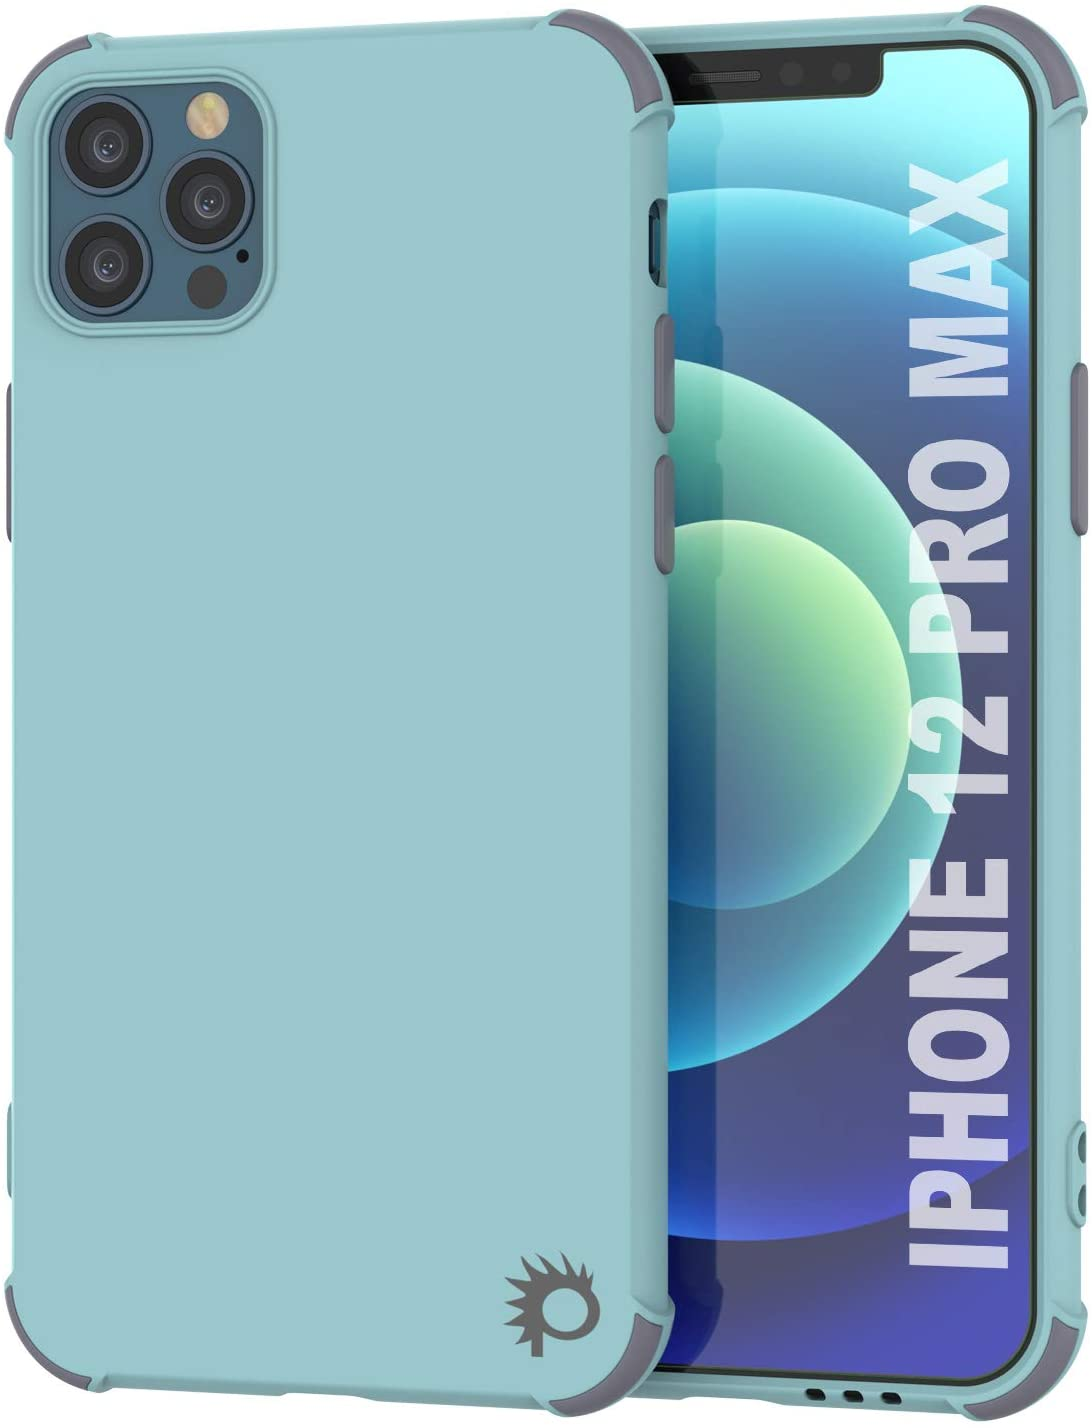 Punkcase Protective & Lightweight TPU Case [Sunshine Series] for iPhone 12 Pro Max [Teal]